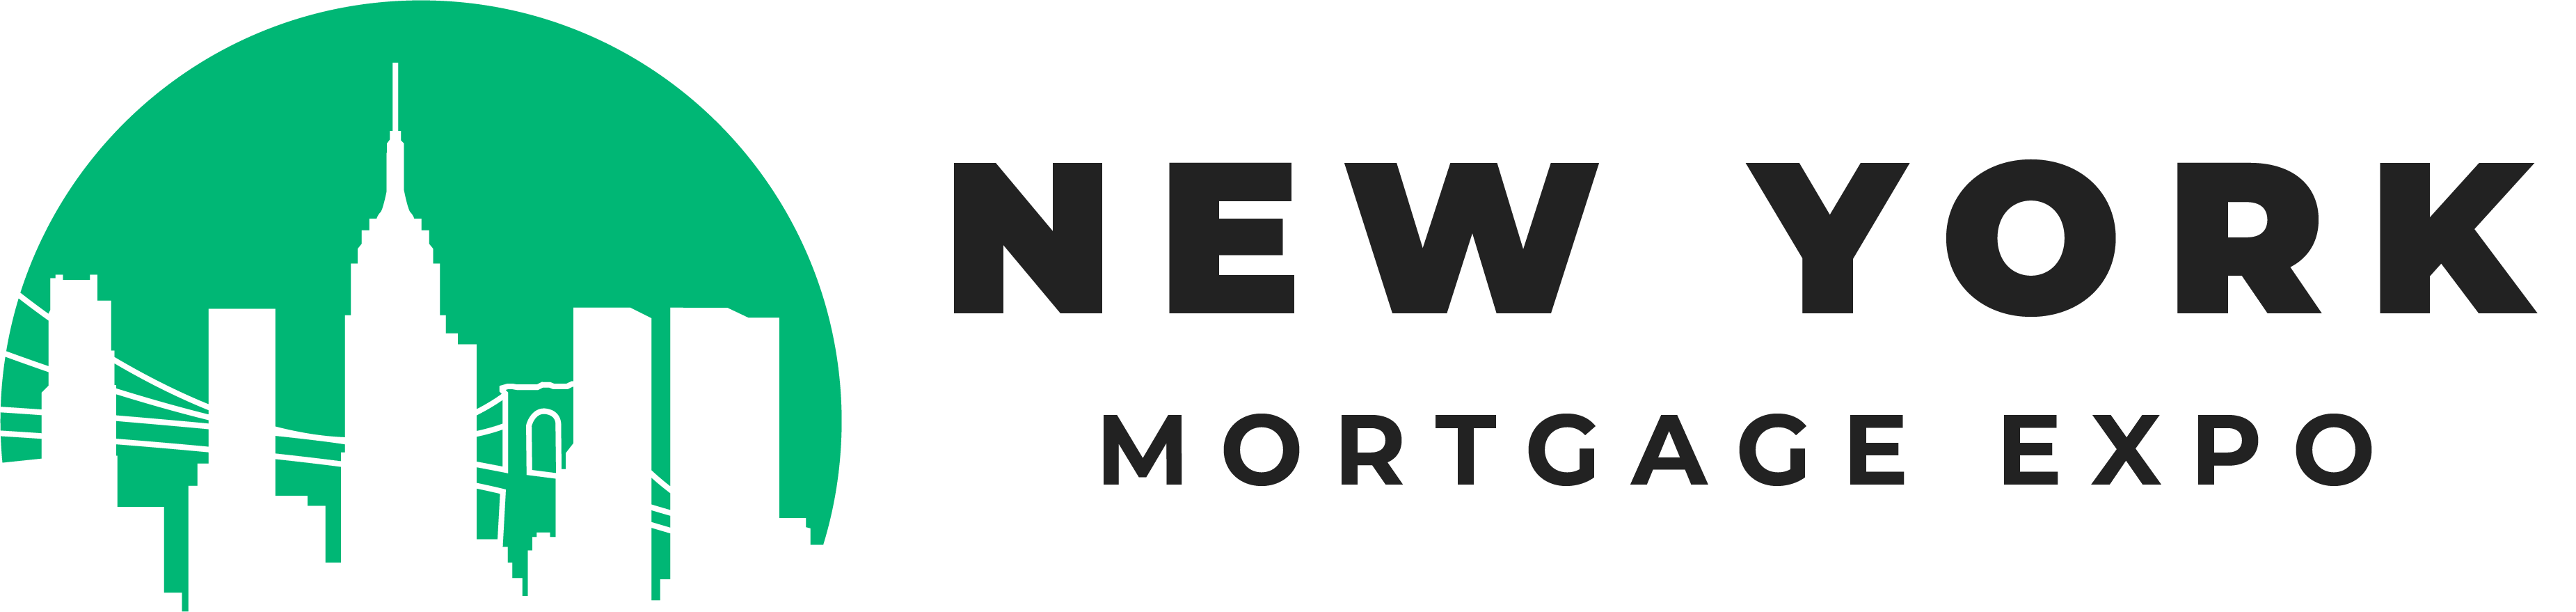 New York Mortgage Expo